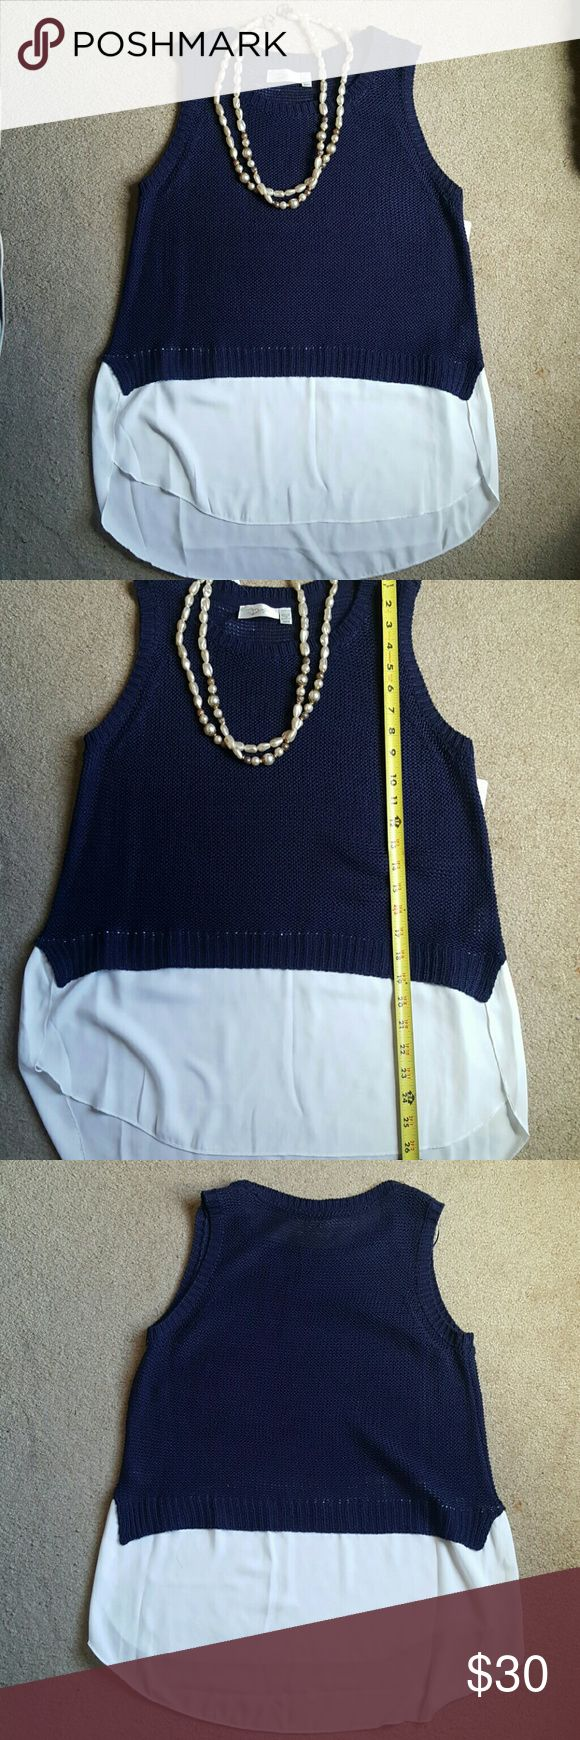 Navy sleeveless sweater Cute and light navy sweater top with layered look. 26in from shoulder to bottom of front. Back is 3in longer. Great with leggings,jeans or jean shorts. Spring Vibes. RD Style Sweaters